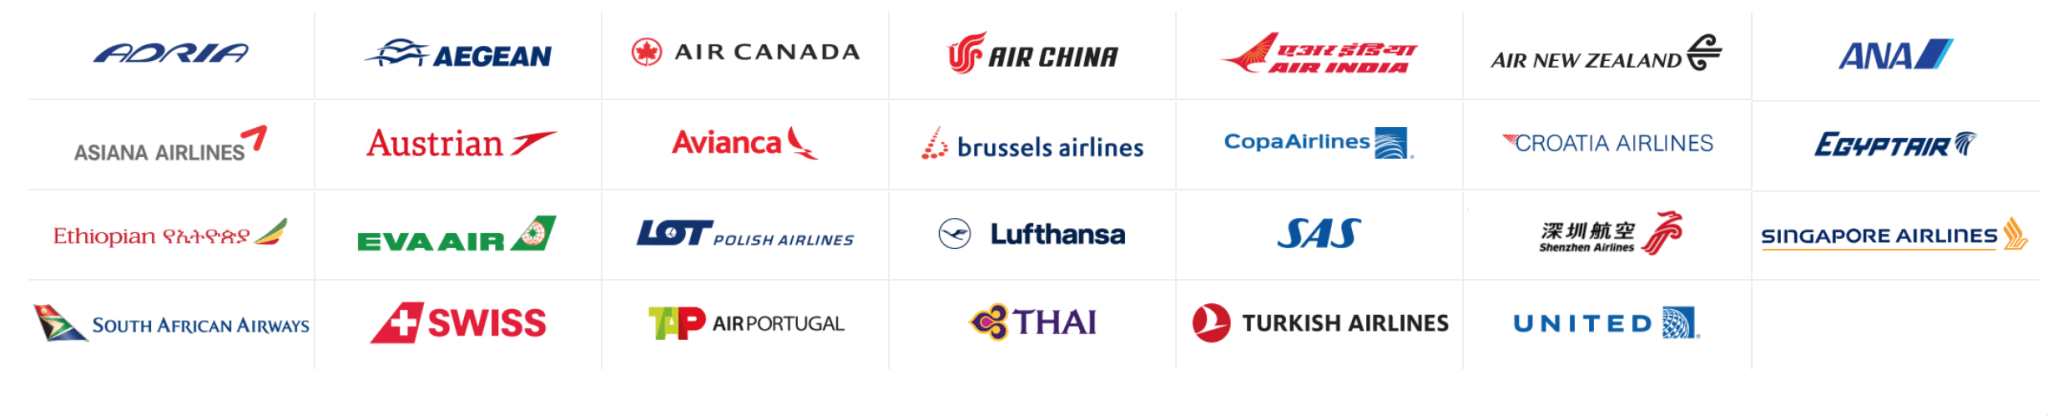 Star Alliance members (Image: Star Alliance)